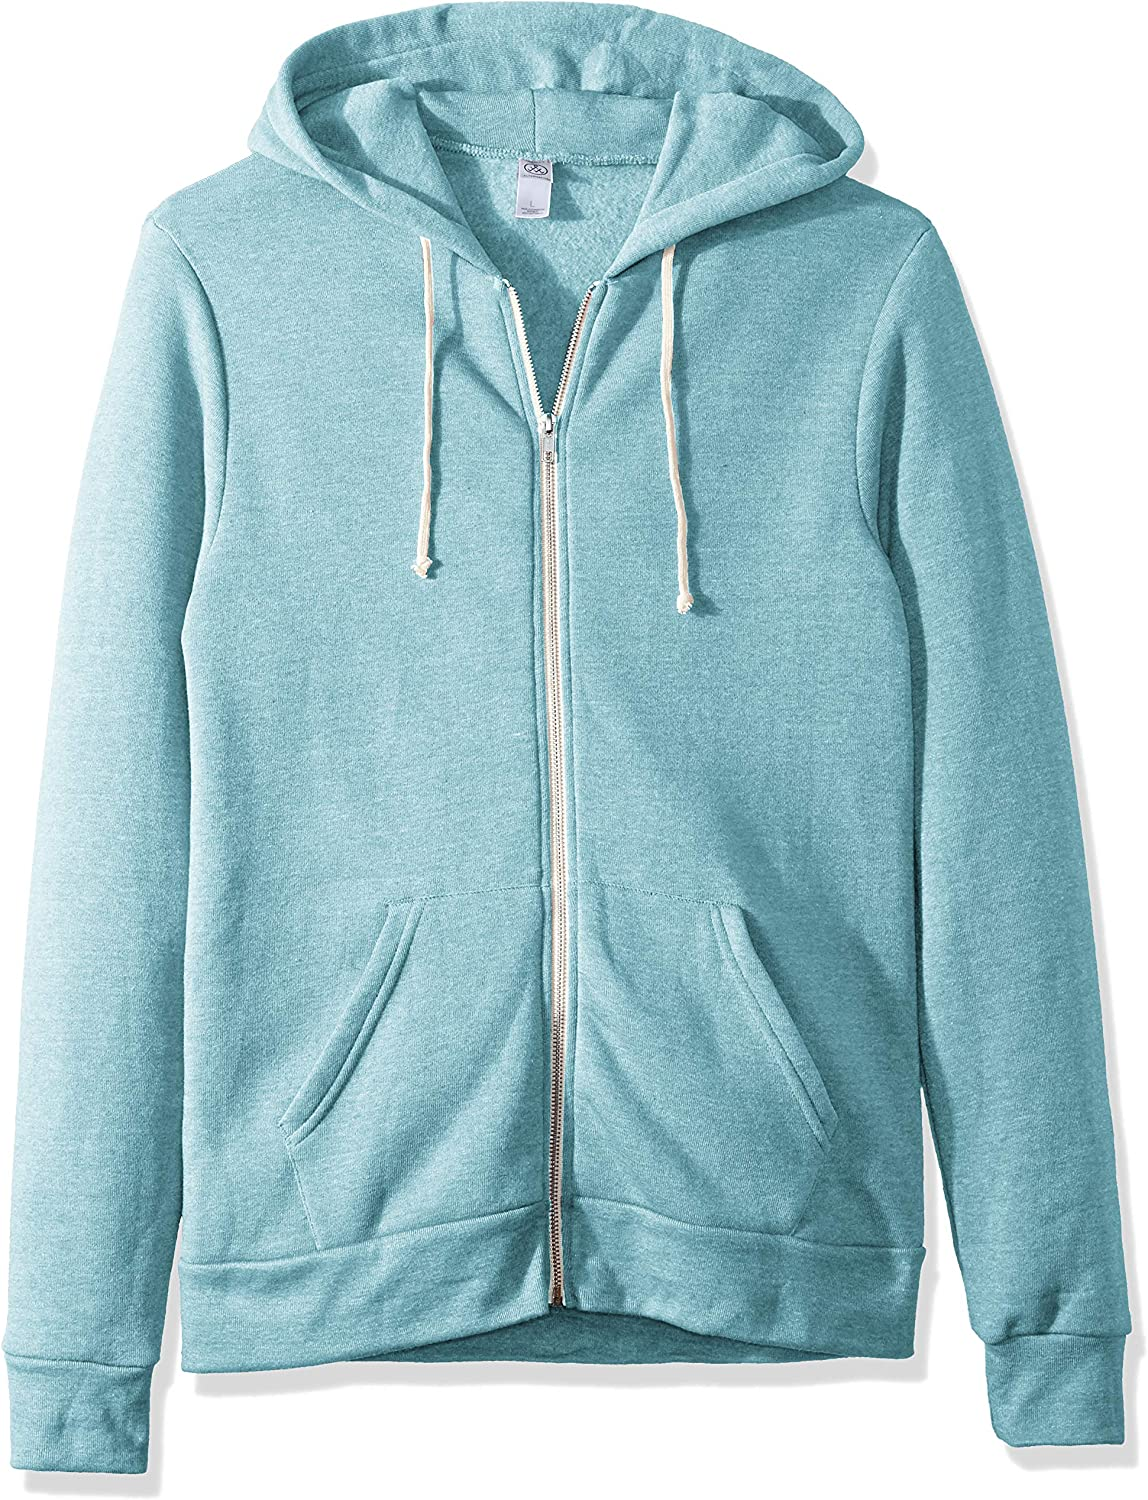 Alternative Cheap mail order shopping Men's Rocky Eco-Fleece Hoodie Zip Popular products